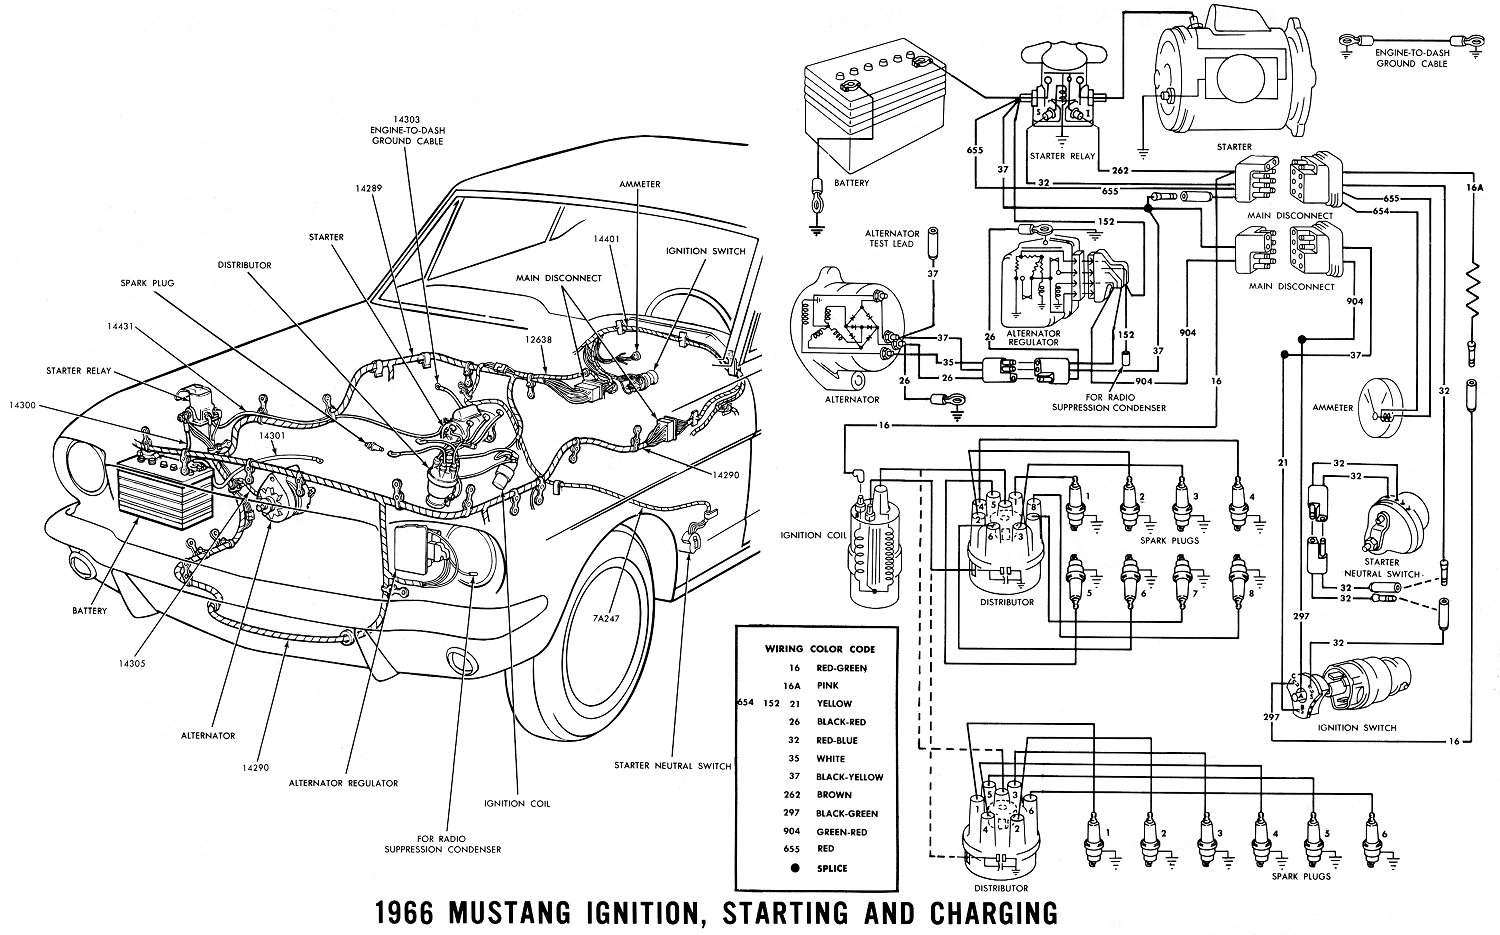 66ignit 1966 mustang wiring diagrams average joe restoration 1997 ford mustang wiring diagram at honlapkeszites.co